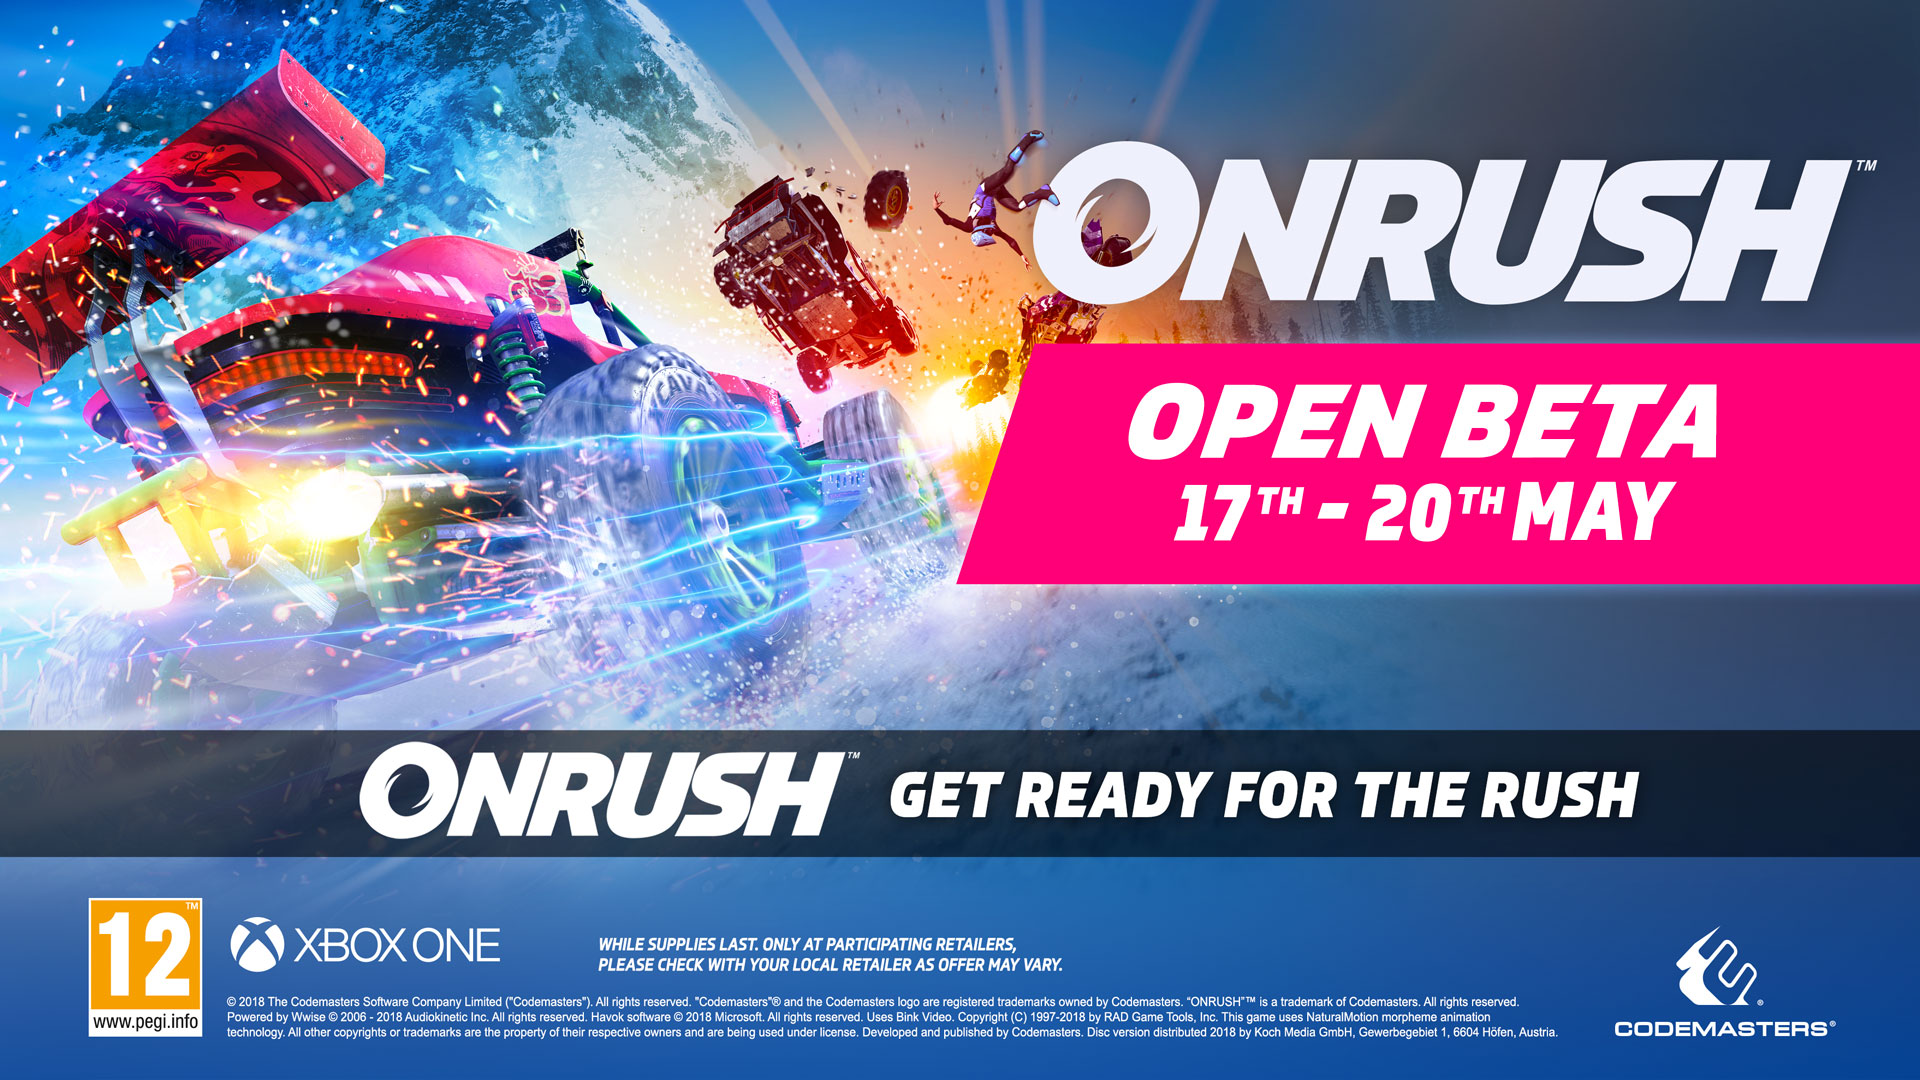 Onrush is having a public beta from May 17